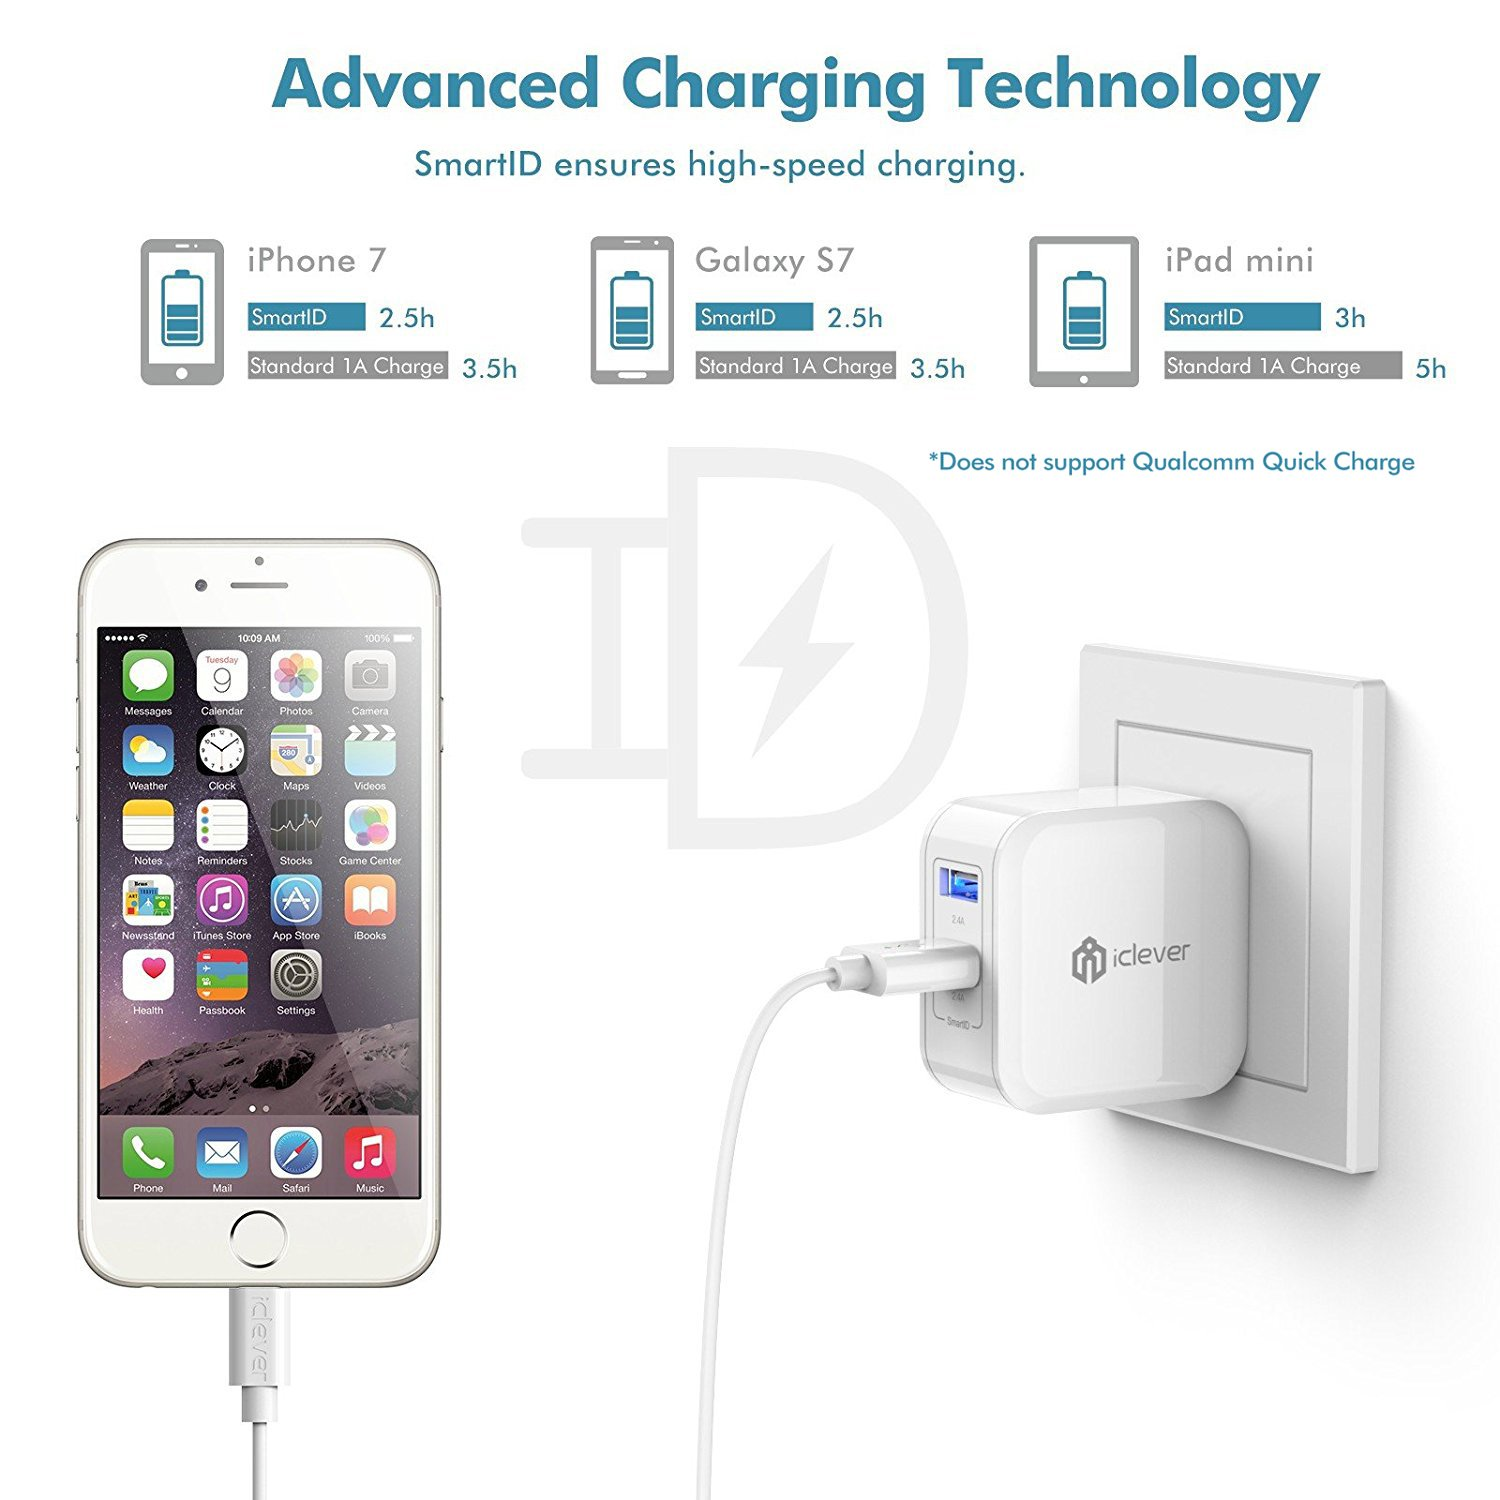 Iclever Boostcube 48a 24w Dual Usb Travel Wall Charger Asus Wiring Diagram With Smartid Technology Foldable Plug Ac Adapter For Iphone X 8 7 Plus 6s 6